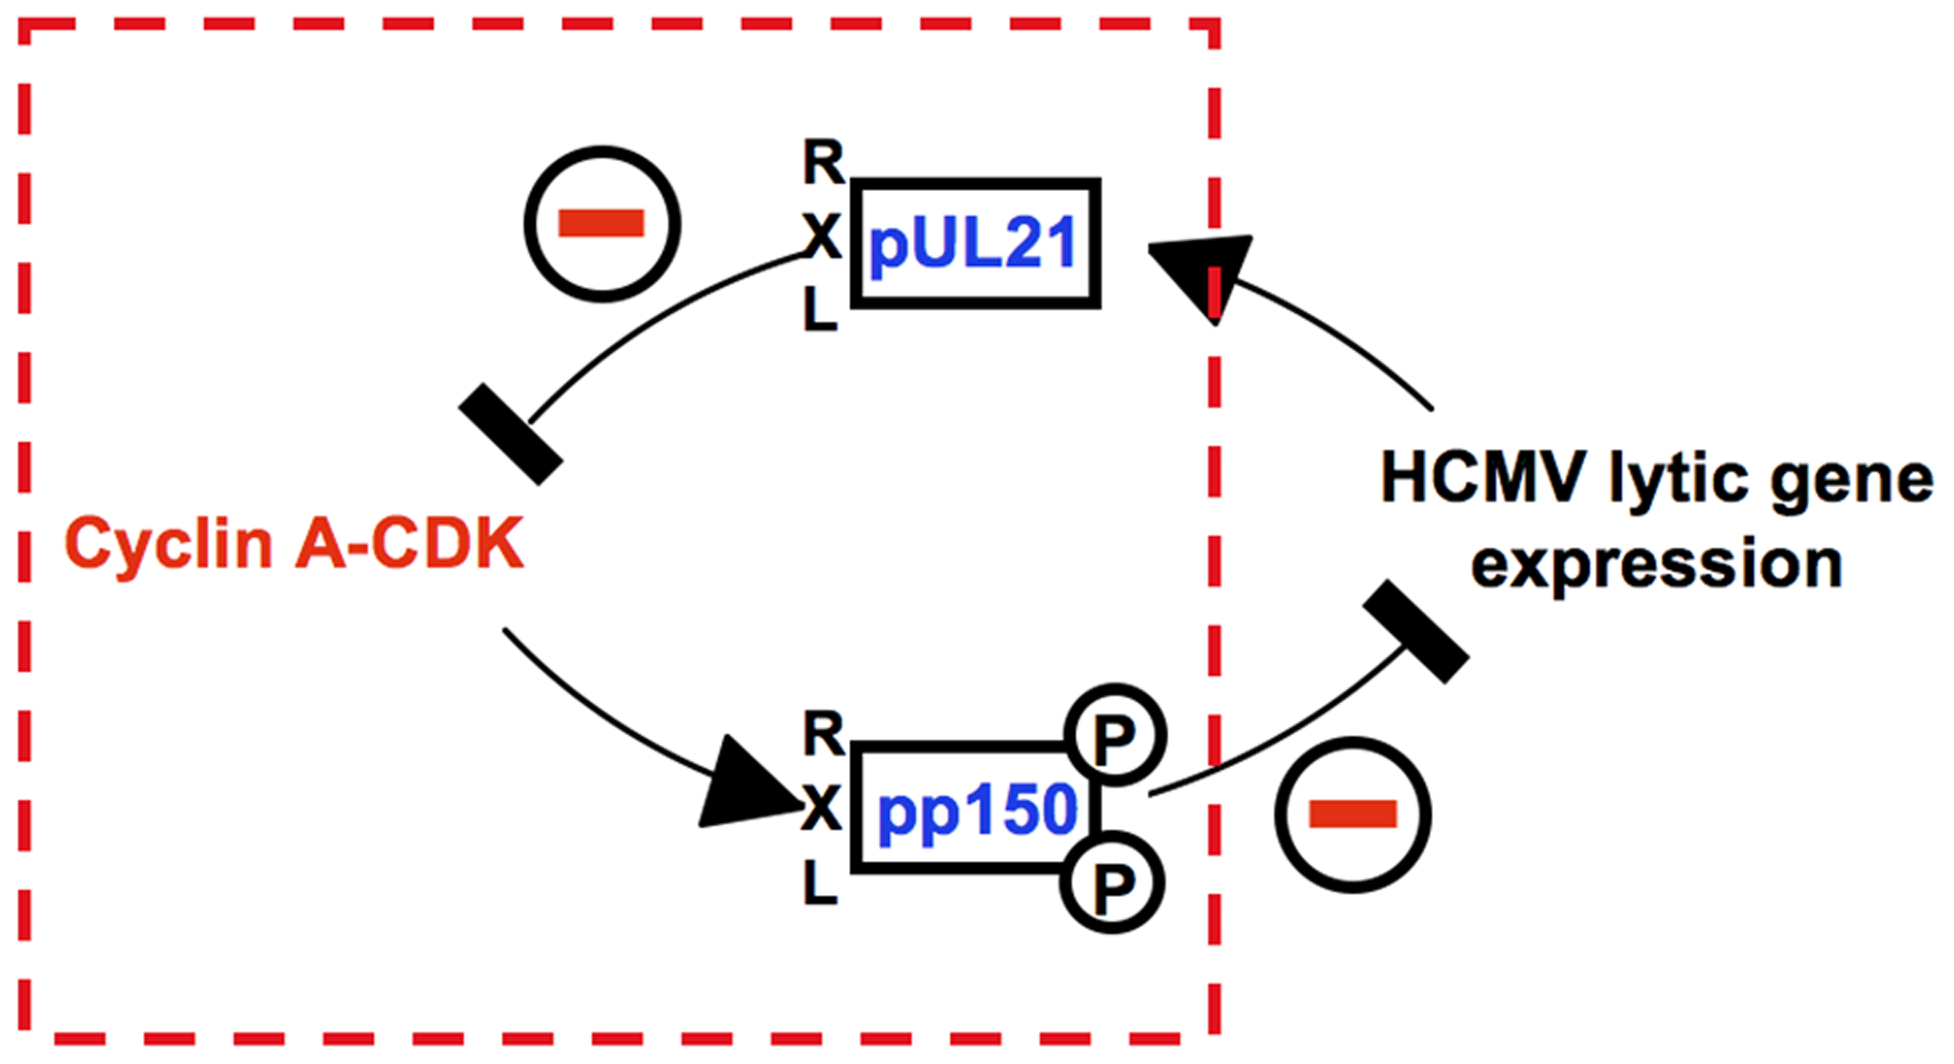 An RXL-based molecular interface between HCMV and Cyclin A2.